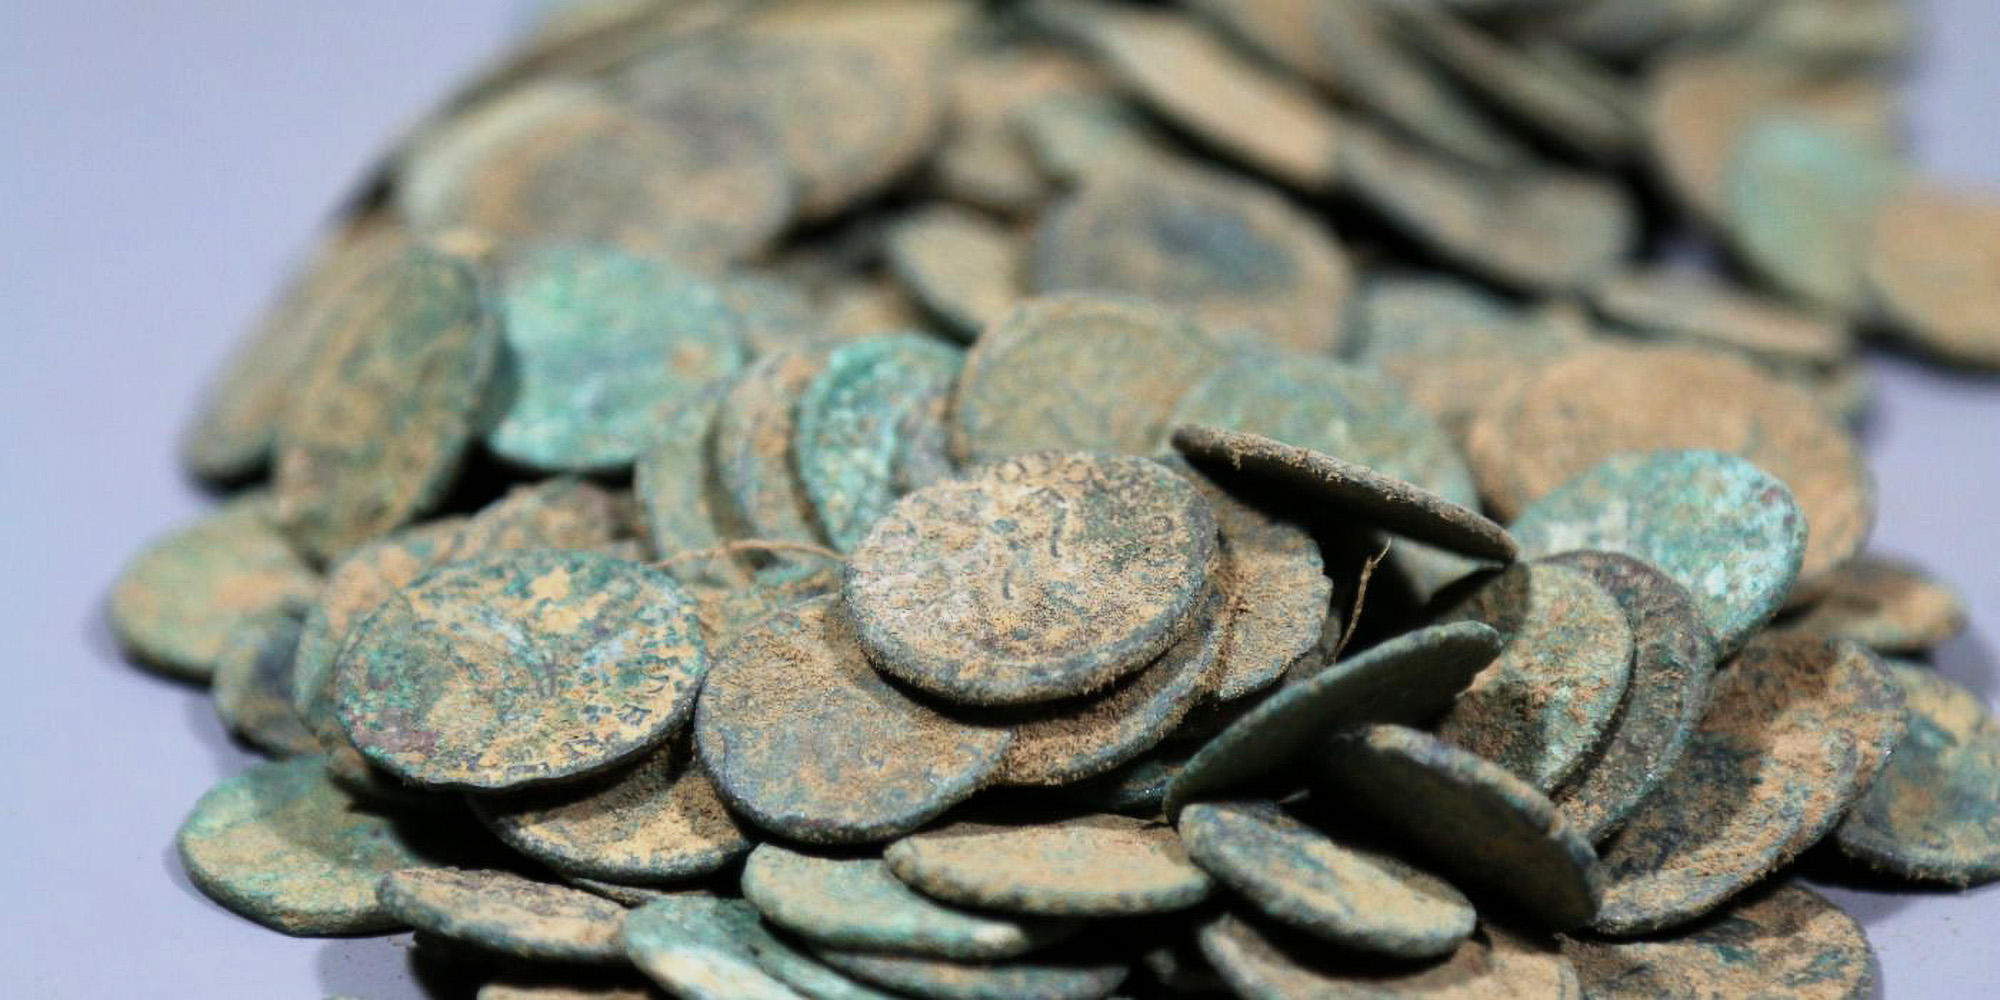 French Artifact Raider Busted Trying to Launder Over 14,000 Roman Coins